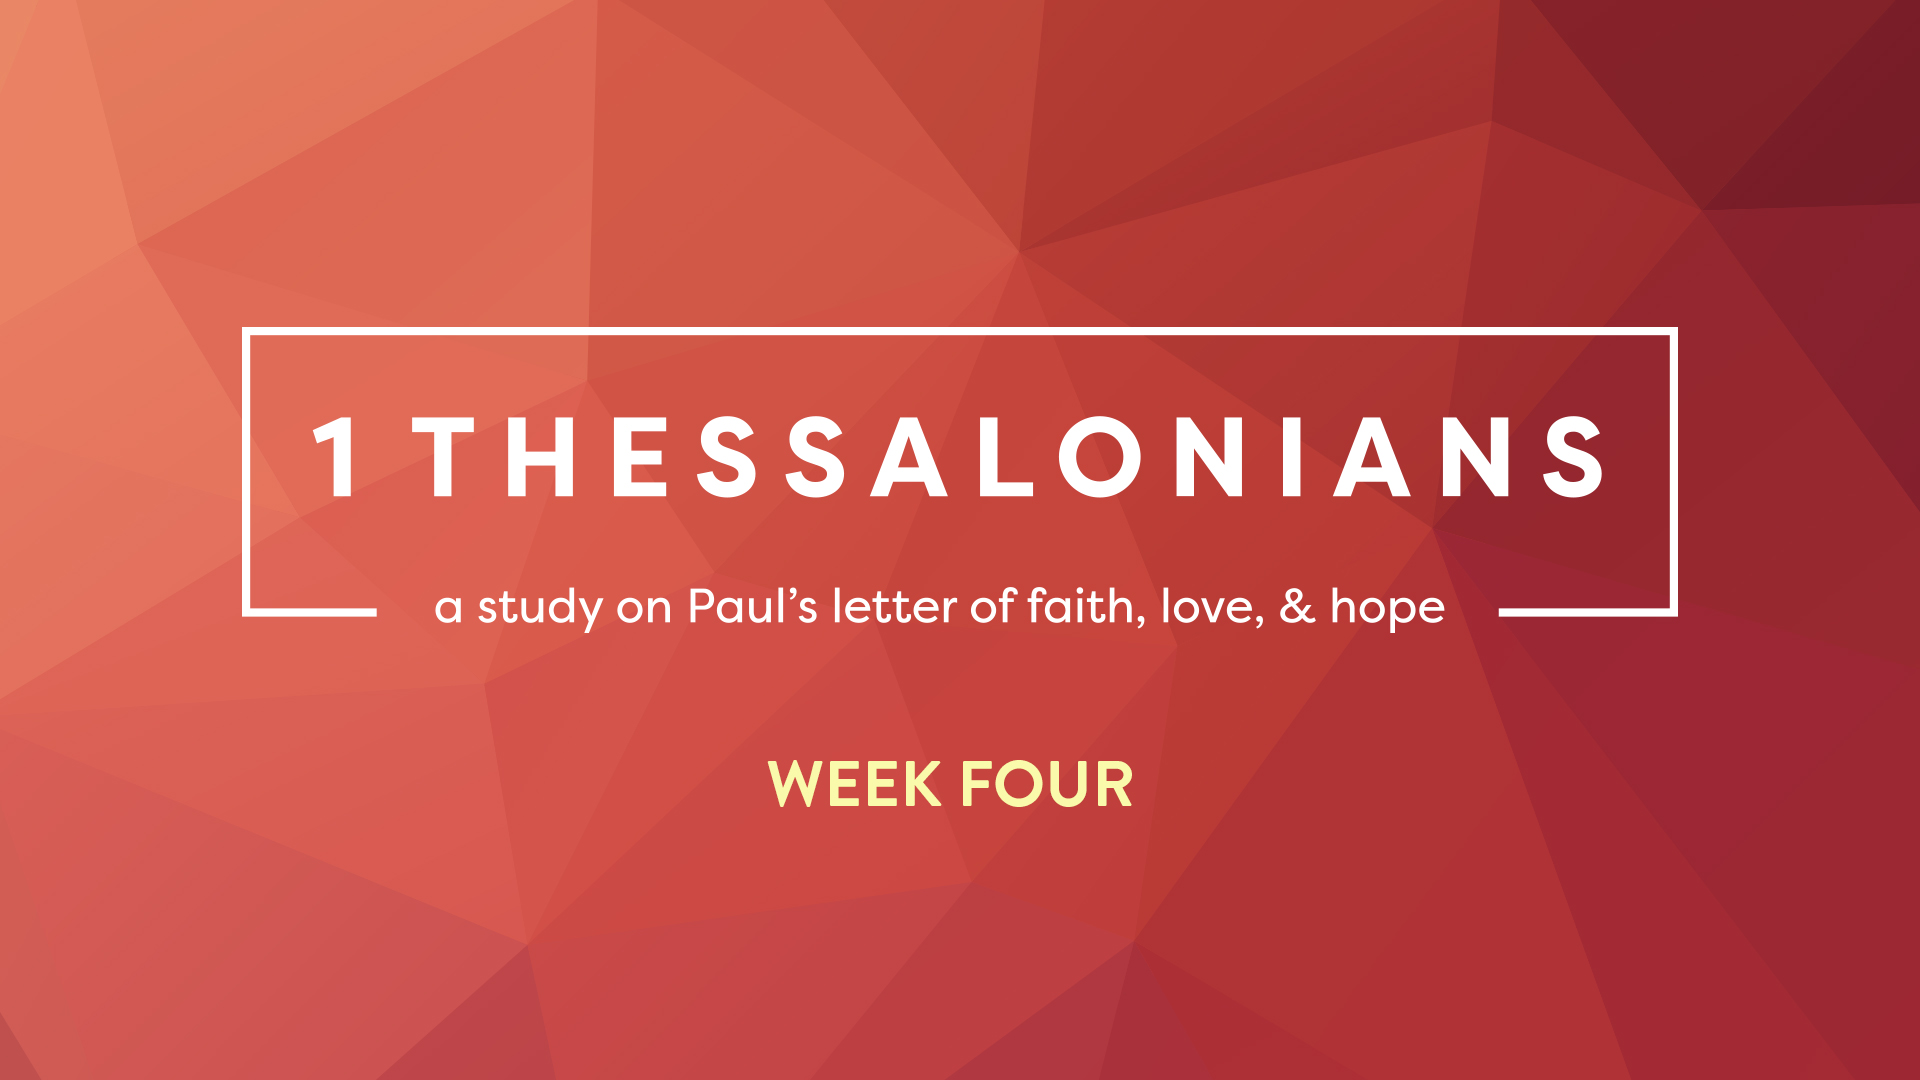 1 Thessalonians: Week Four